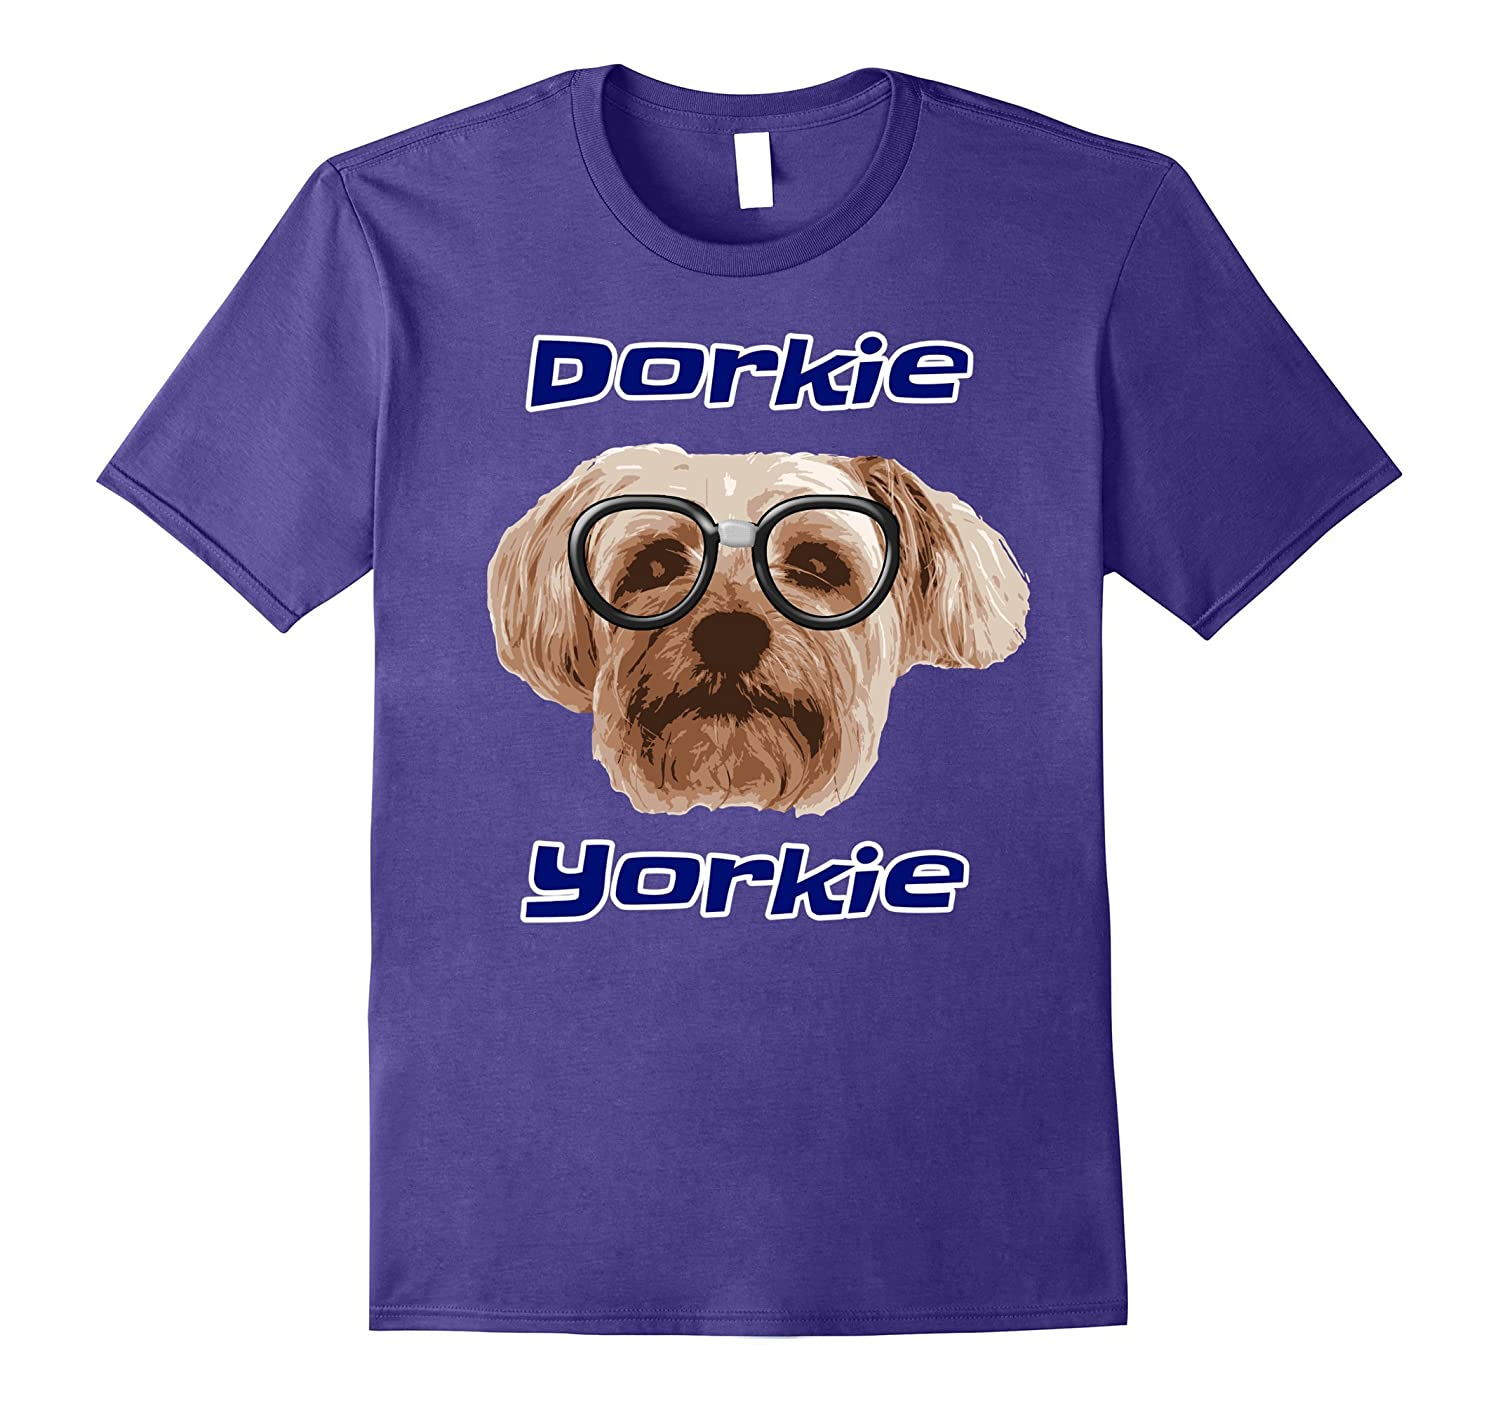 Yorkie Dorkie Yorkshire Terrier Lover T-Shirt Dog Nerd Gift-Art